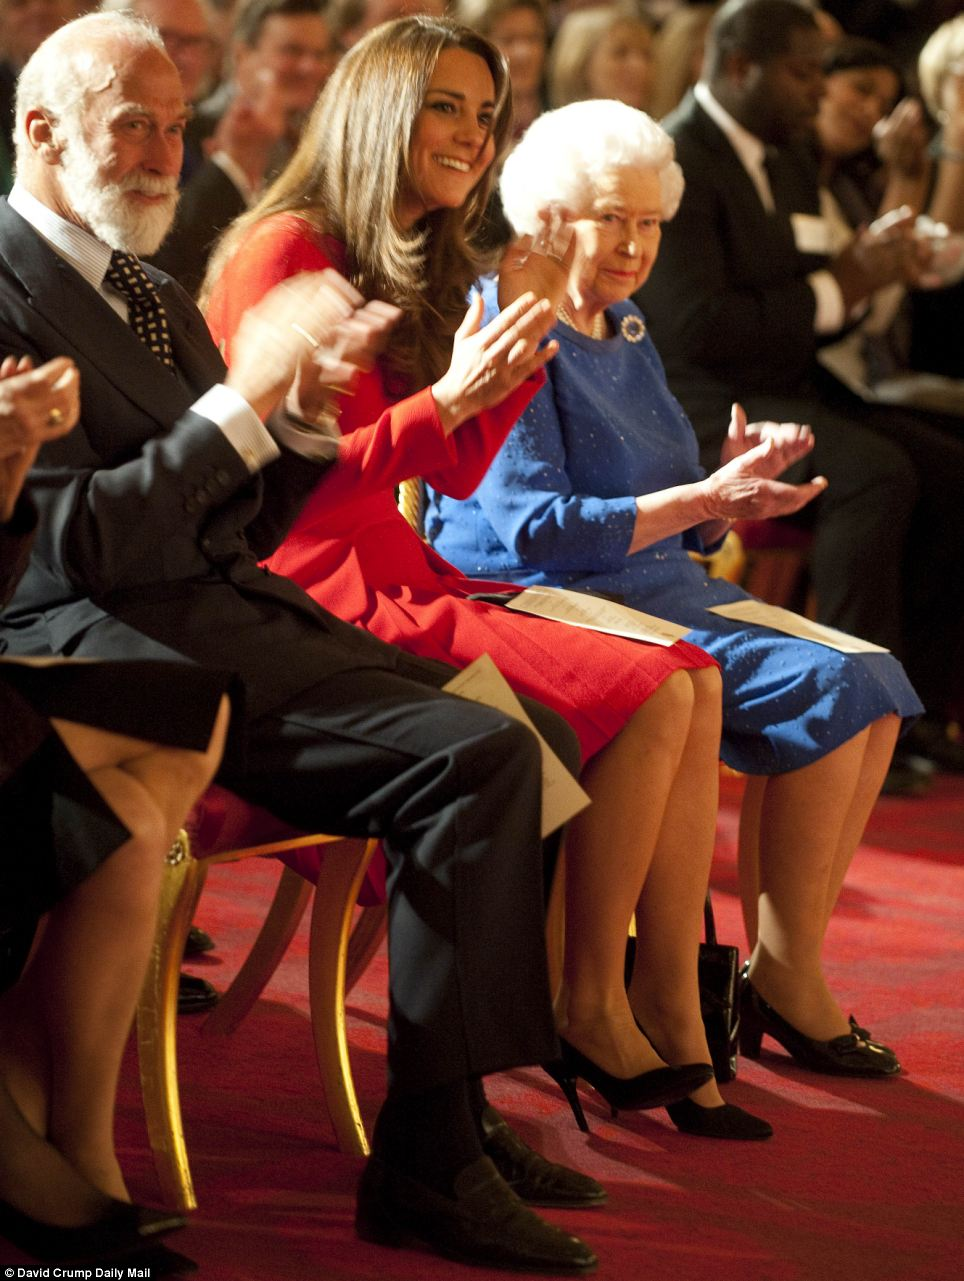 Applause: The Queen, the Duchess of Cambridge and Prince Michael of Kent watch the performance at Buckingham Palace